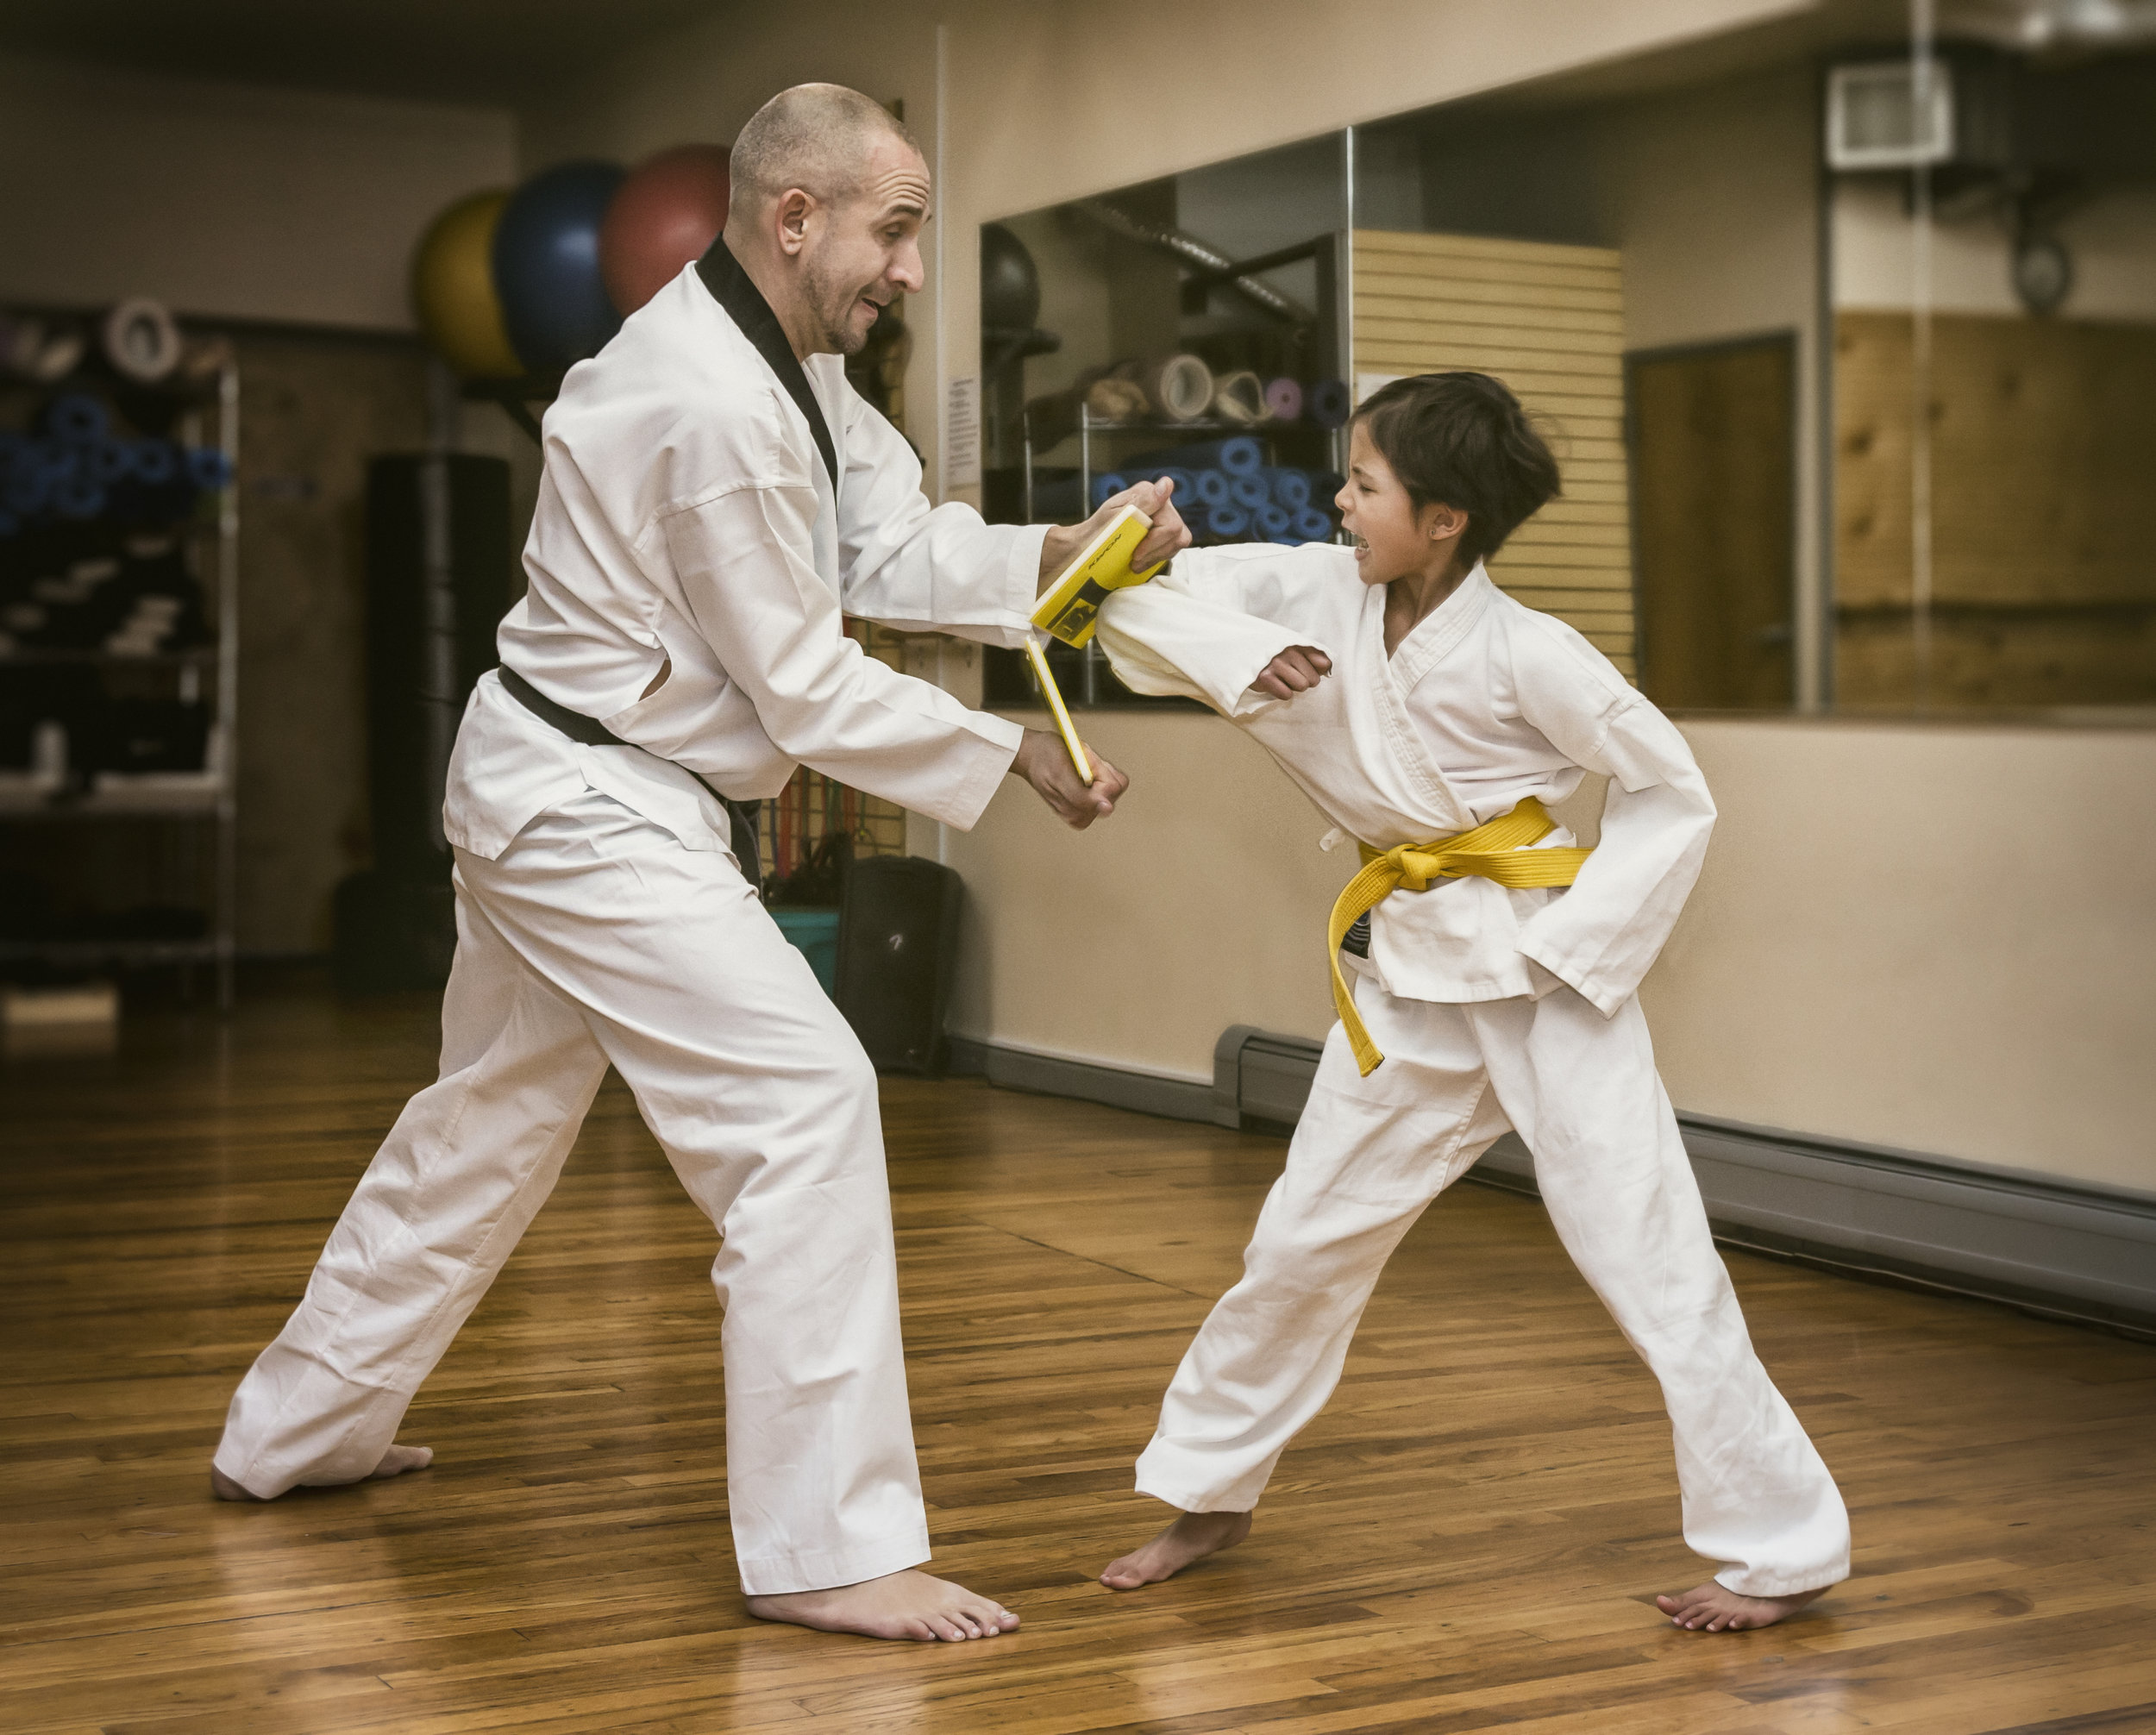 bethel-jidokwon-tkd-instruction.jpg